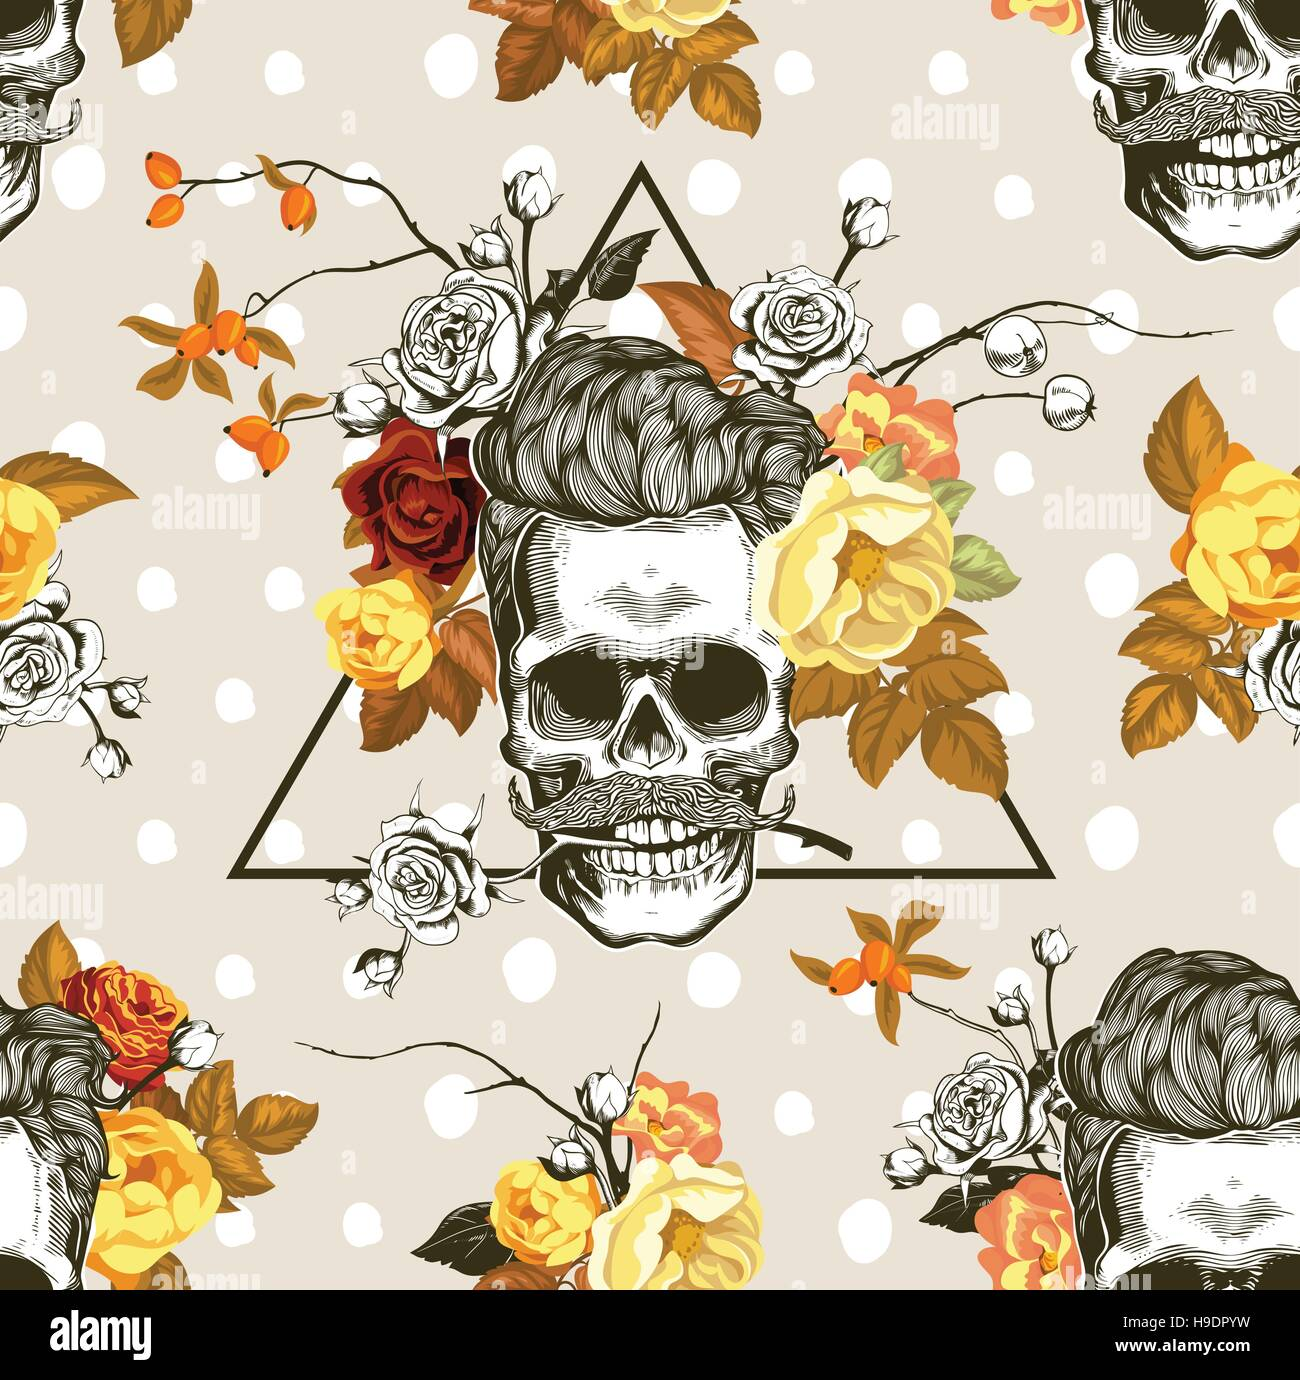 Hipster Seamless Pattern With The Skulls Autumn Flowers And Leaves In Background Skull Silhouette Engraving Style Vector